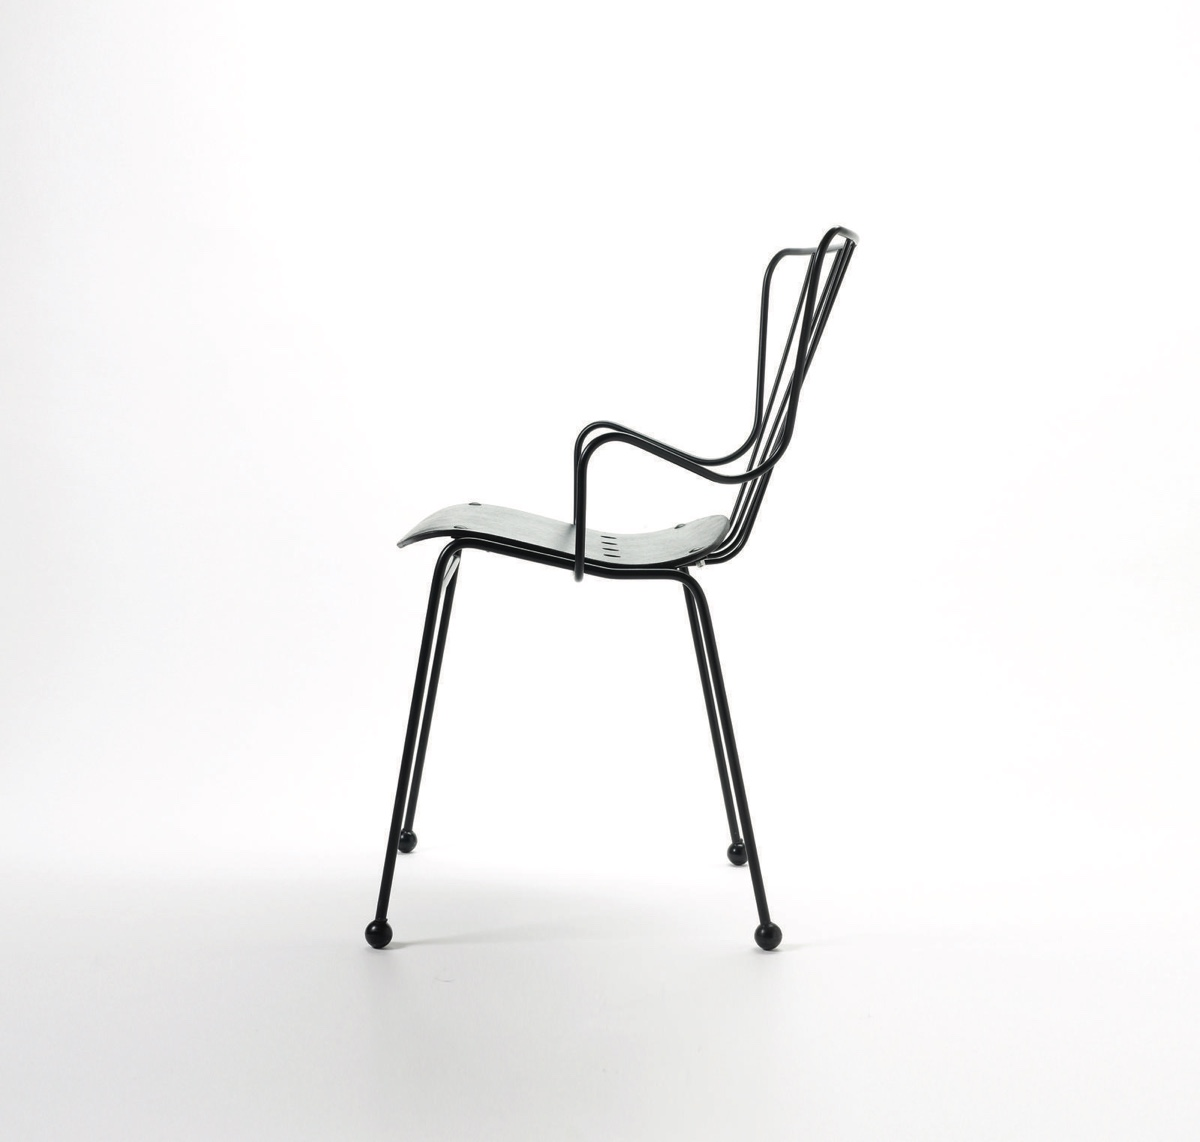 Antelope chair in black.